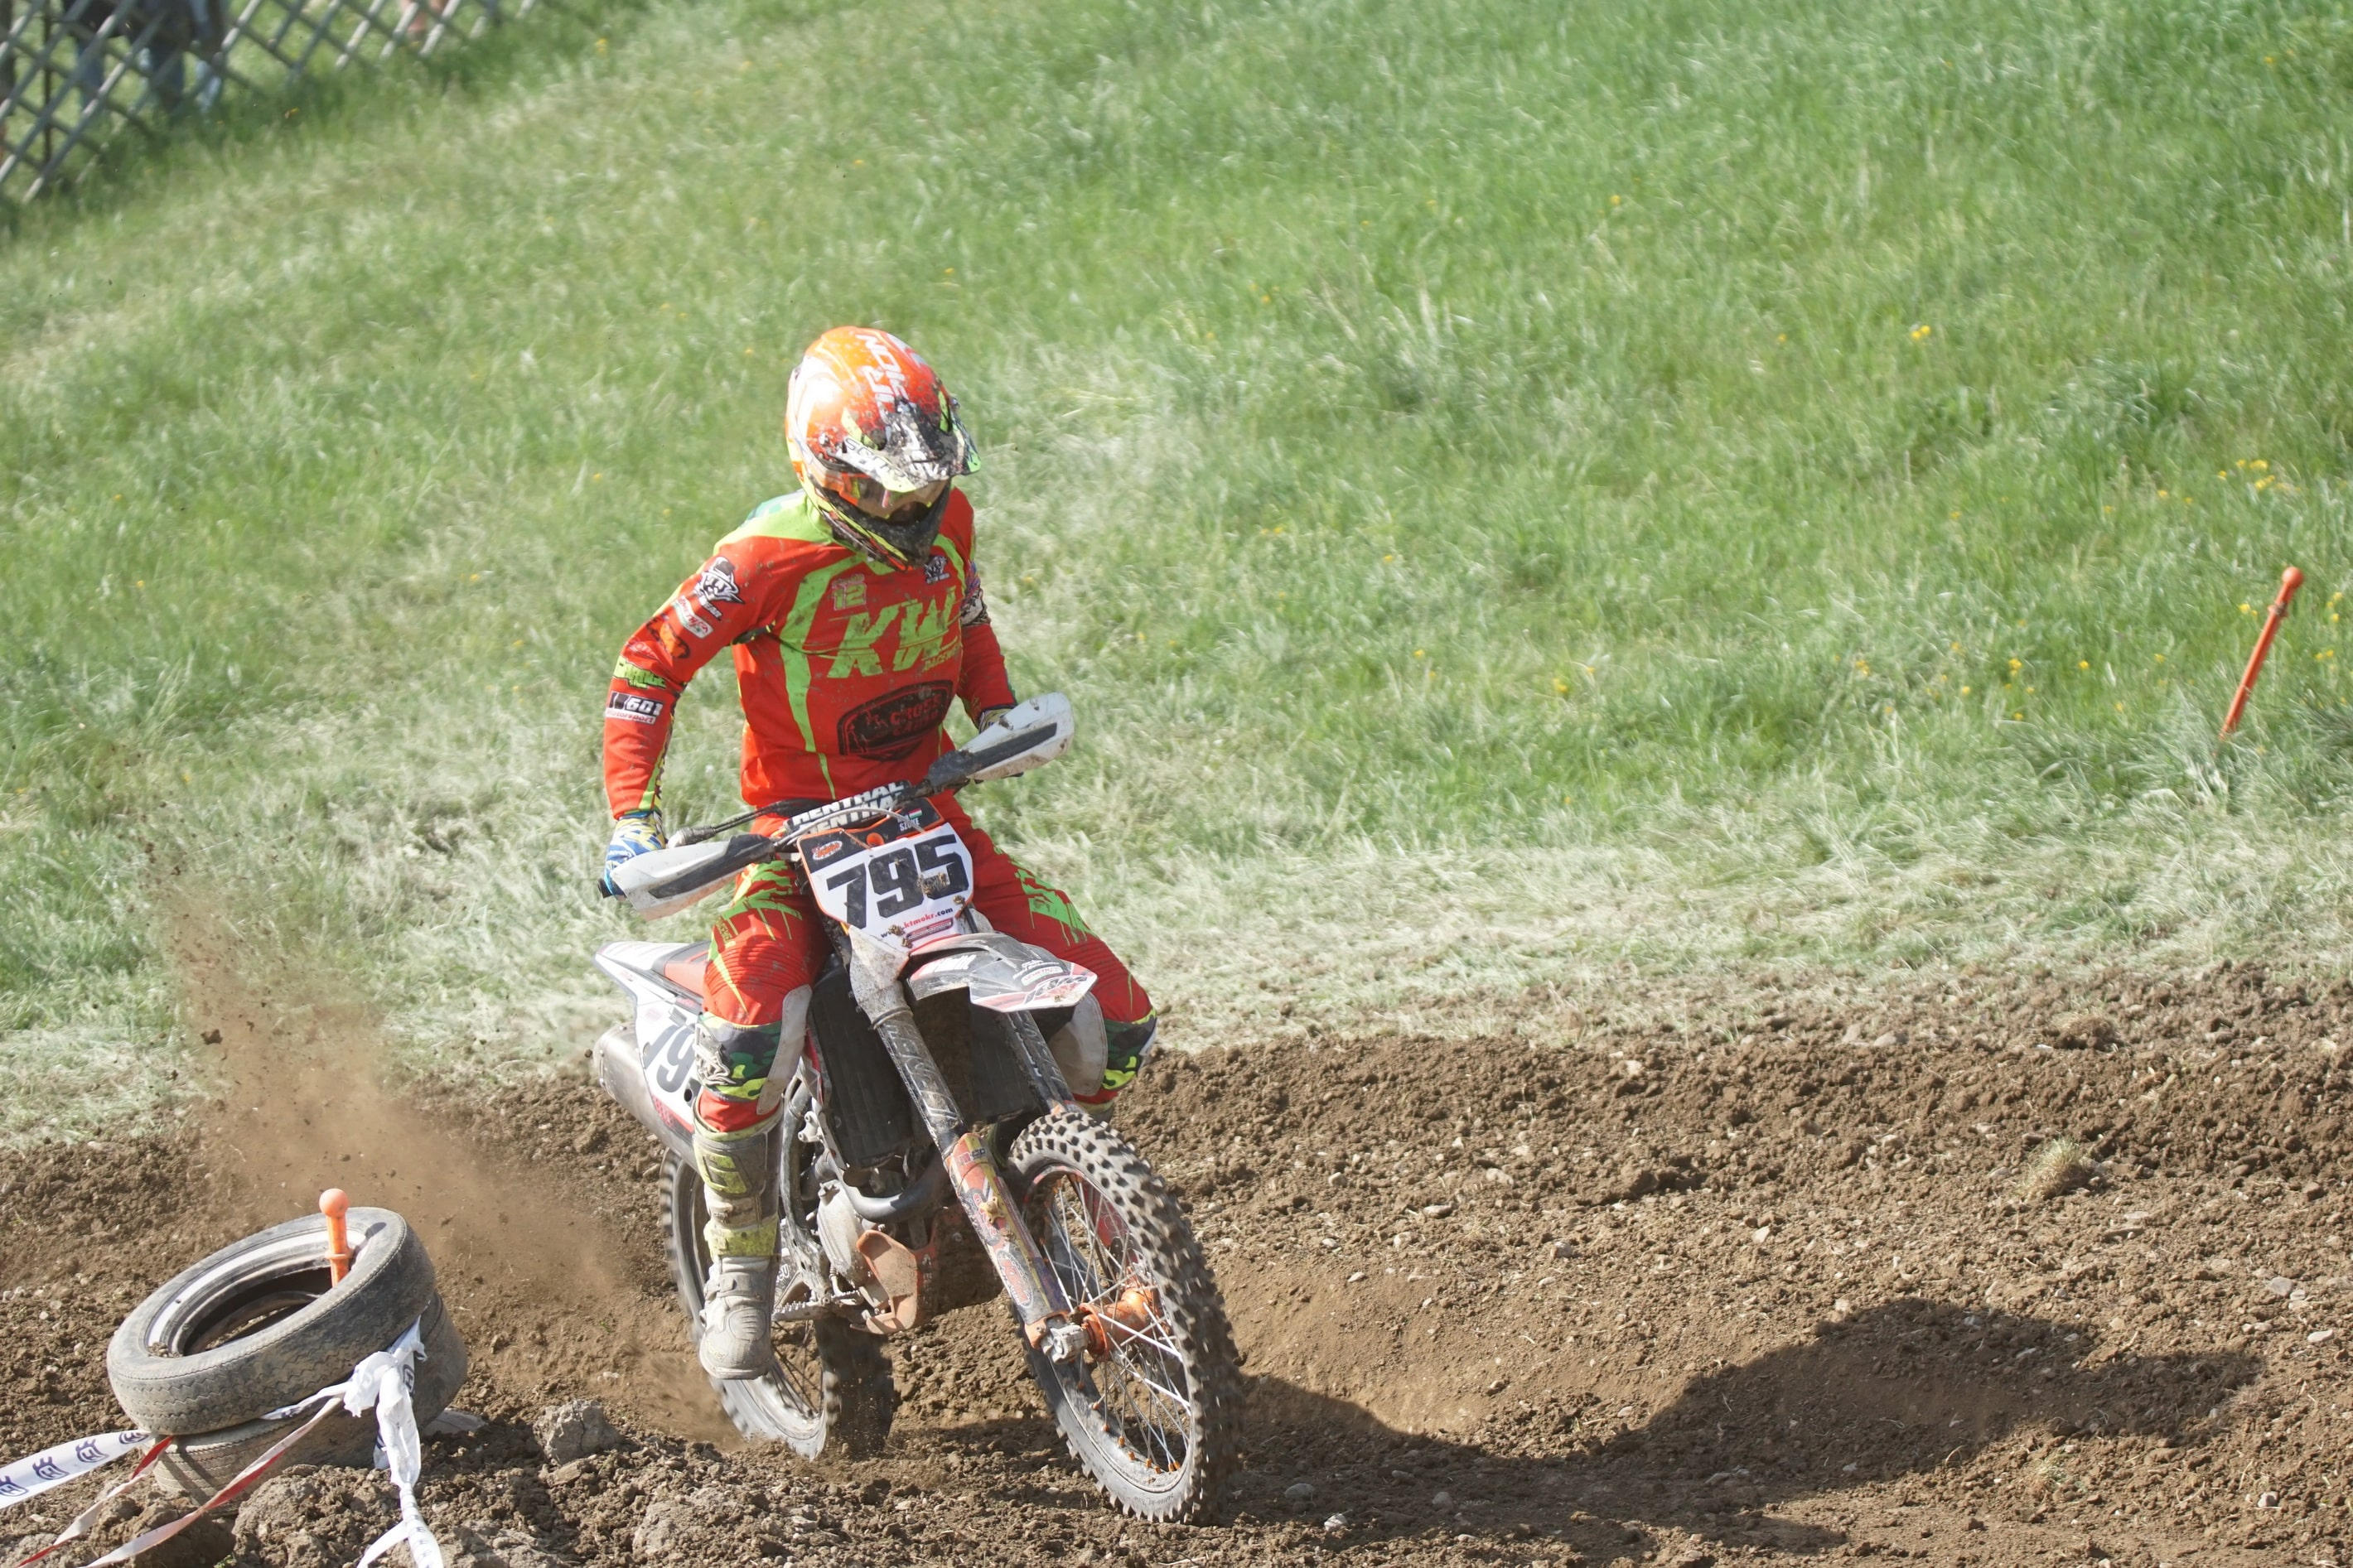 DSC 812_Moto Cross Sittendorf Teil1 am 29.04.2018